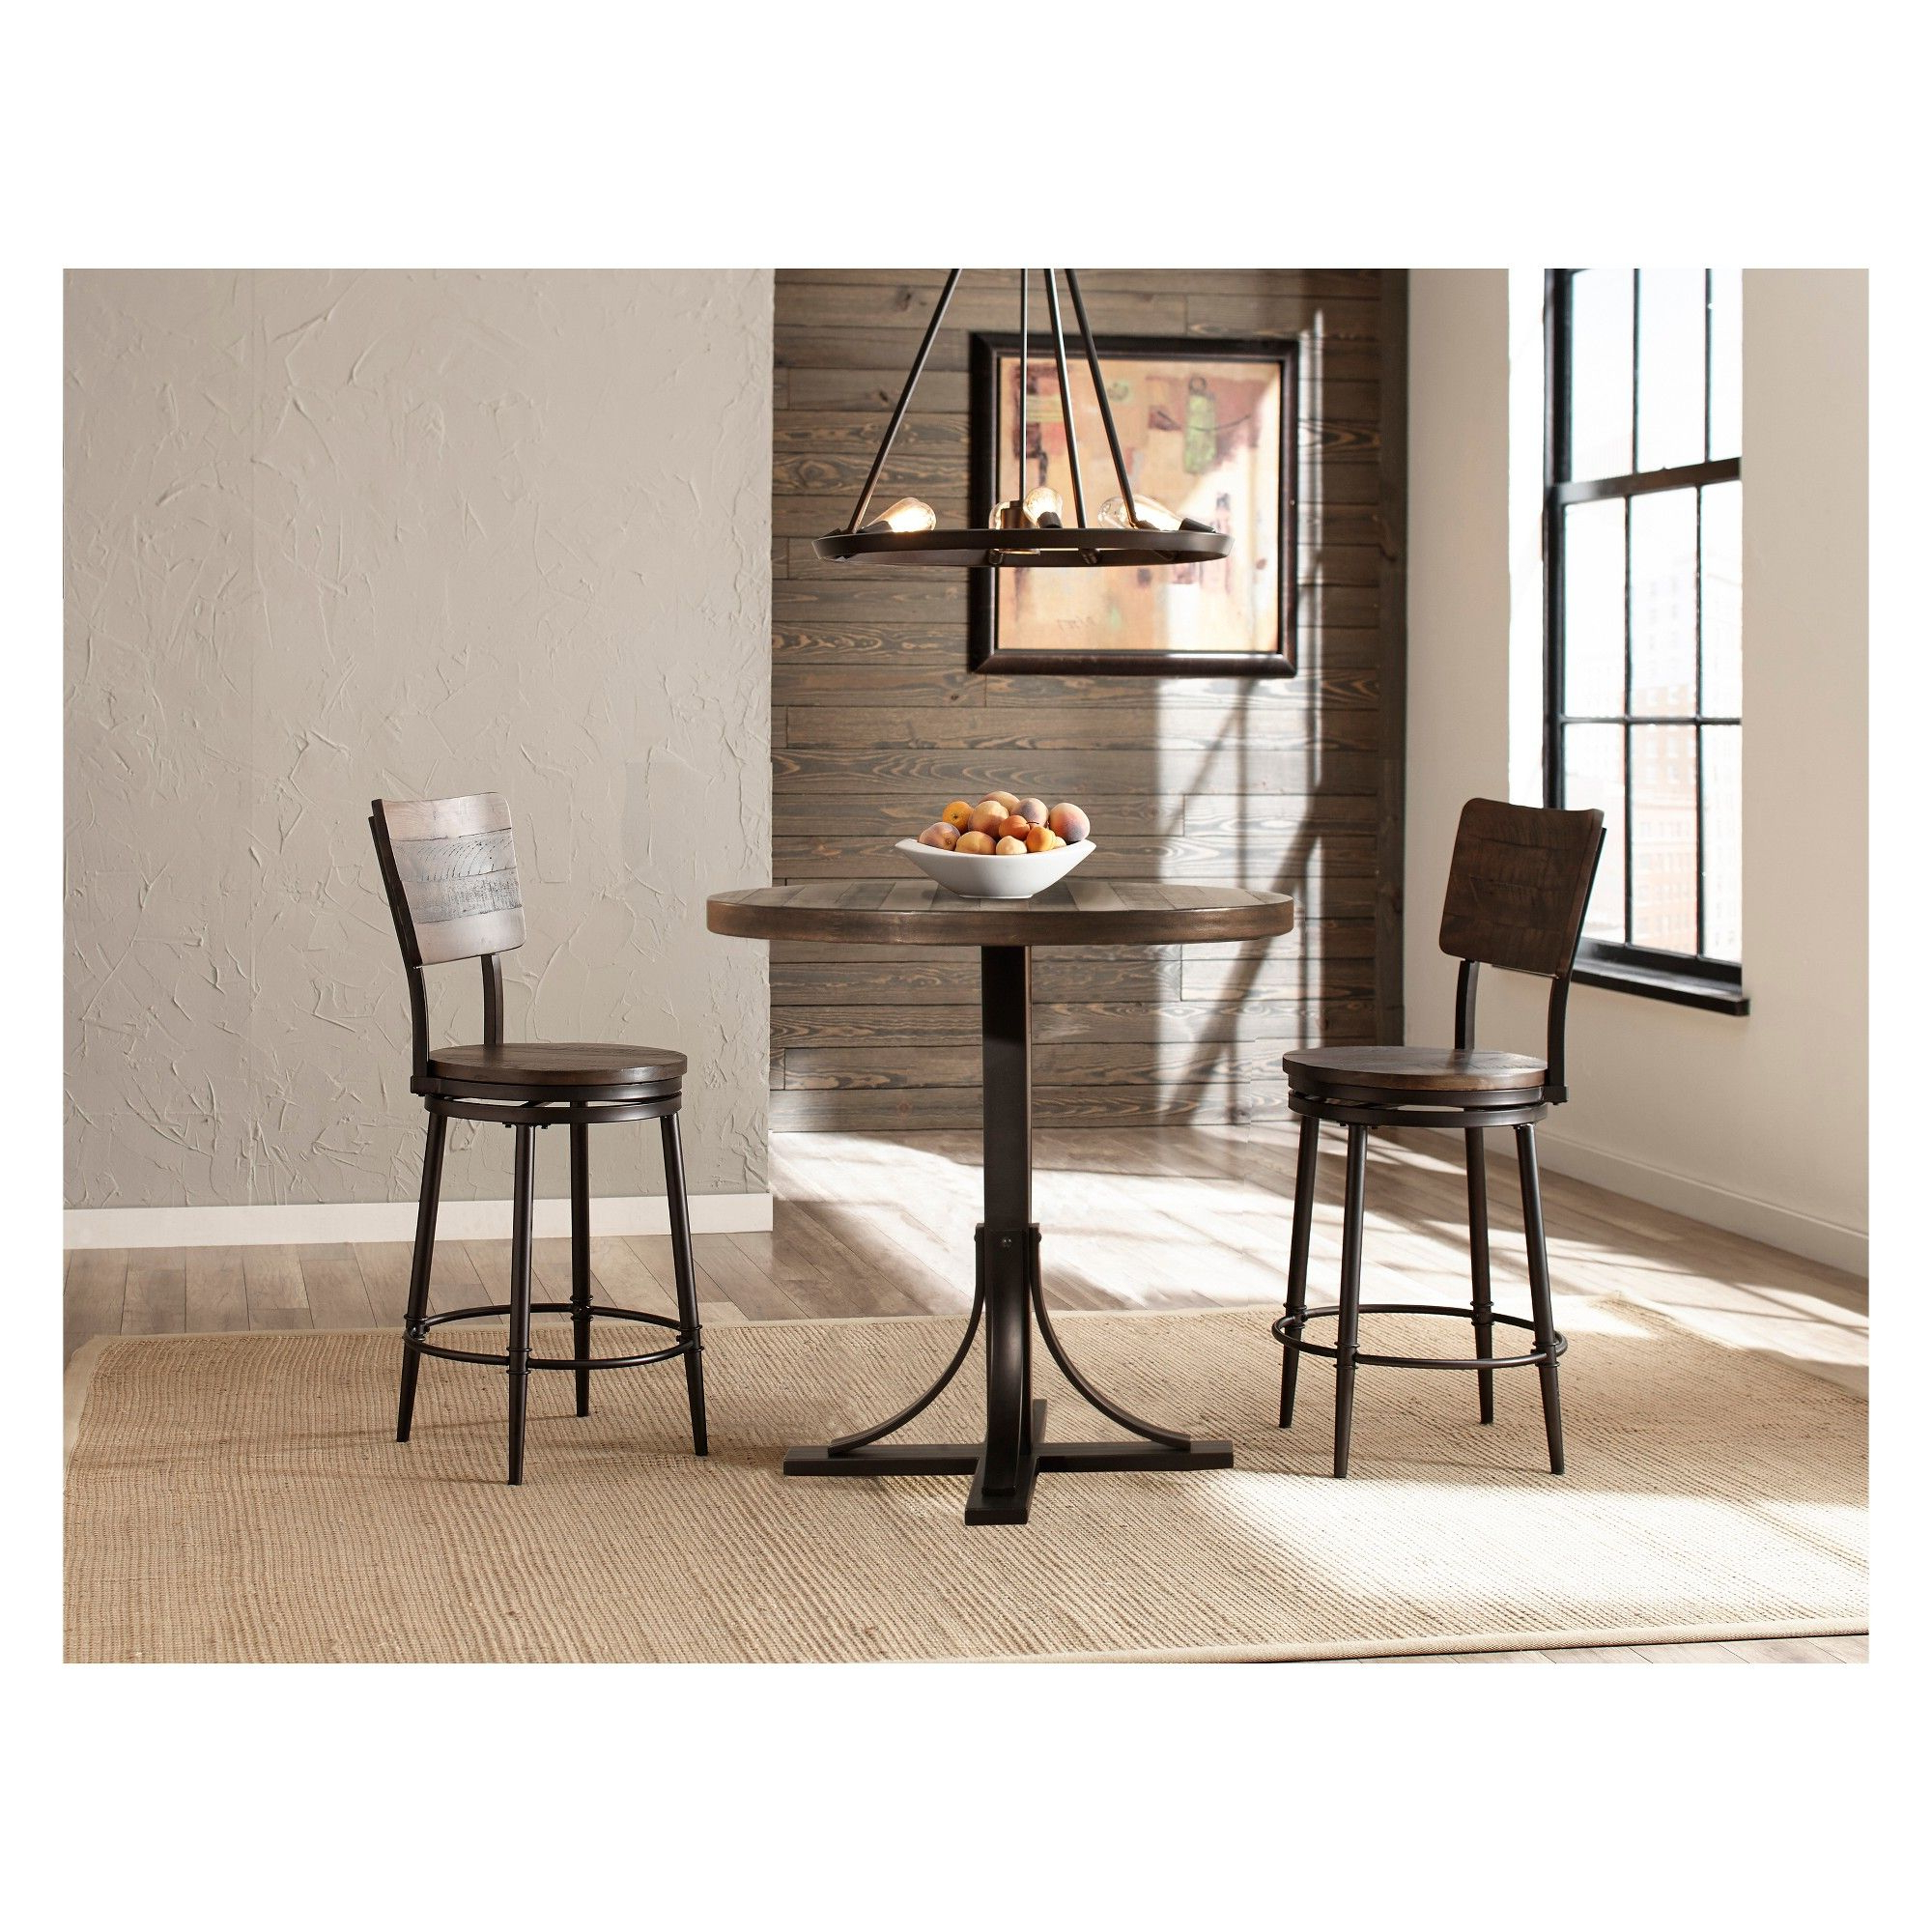 Newest Acacia Wood Medley Medium Dining Tables With Metal Base In Jennings 3pc Counter Height Dining Set With Swivel Counter (View 9 of 30)